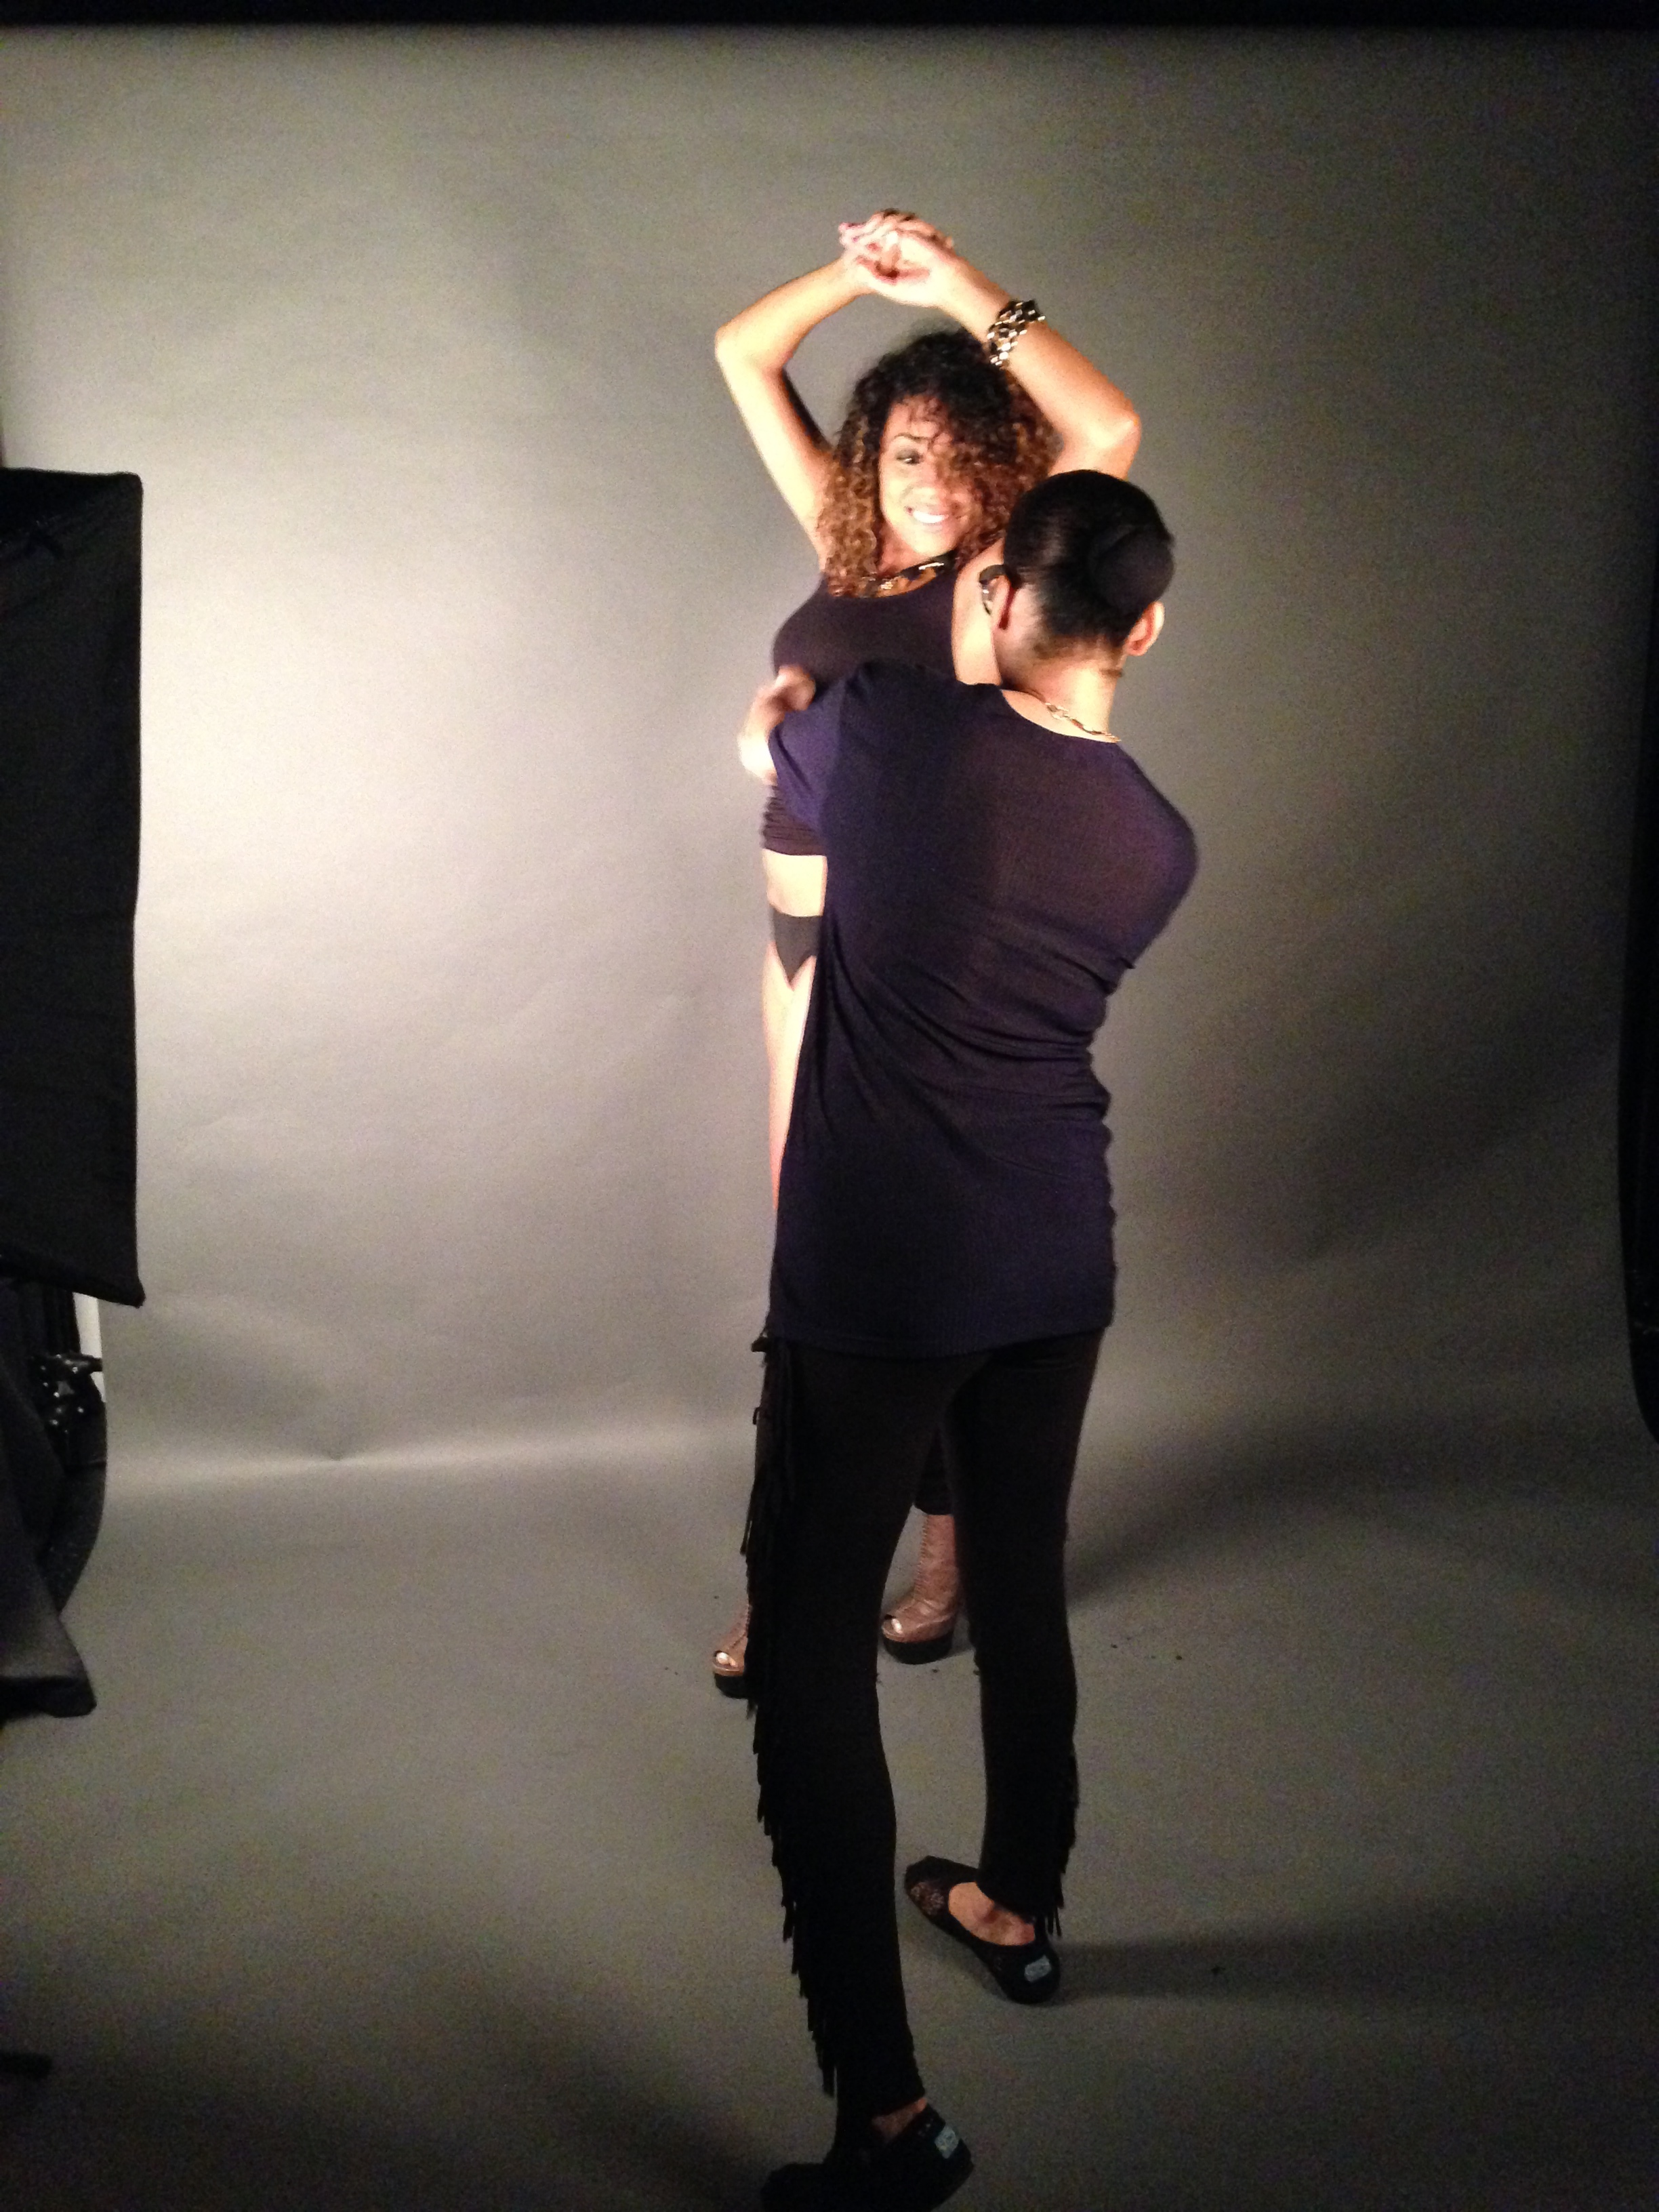 behind-the-scenes-FLASH-DANCE-fashion-photography-illy-perez22.jpg